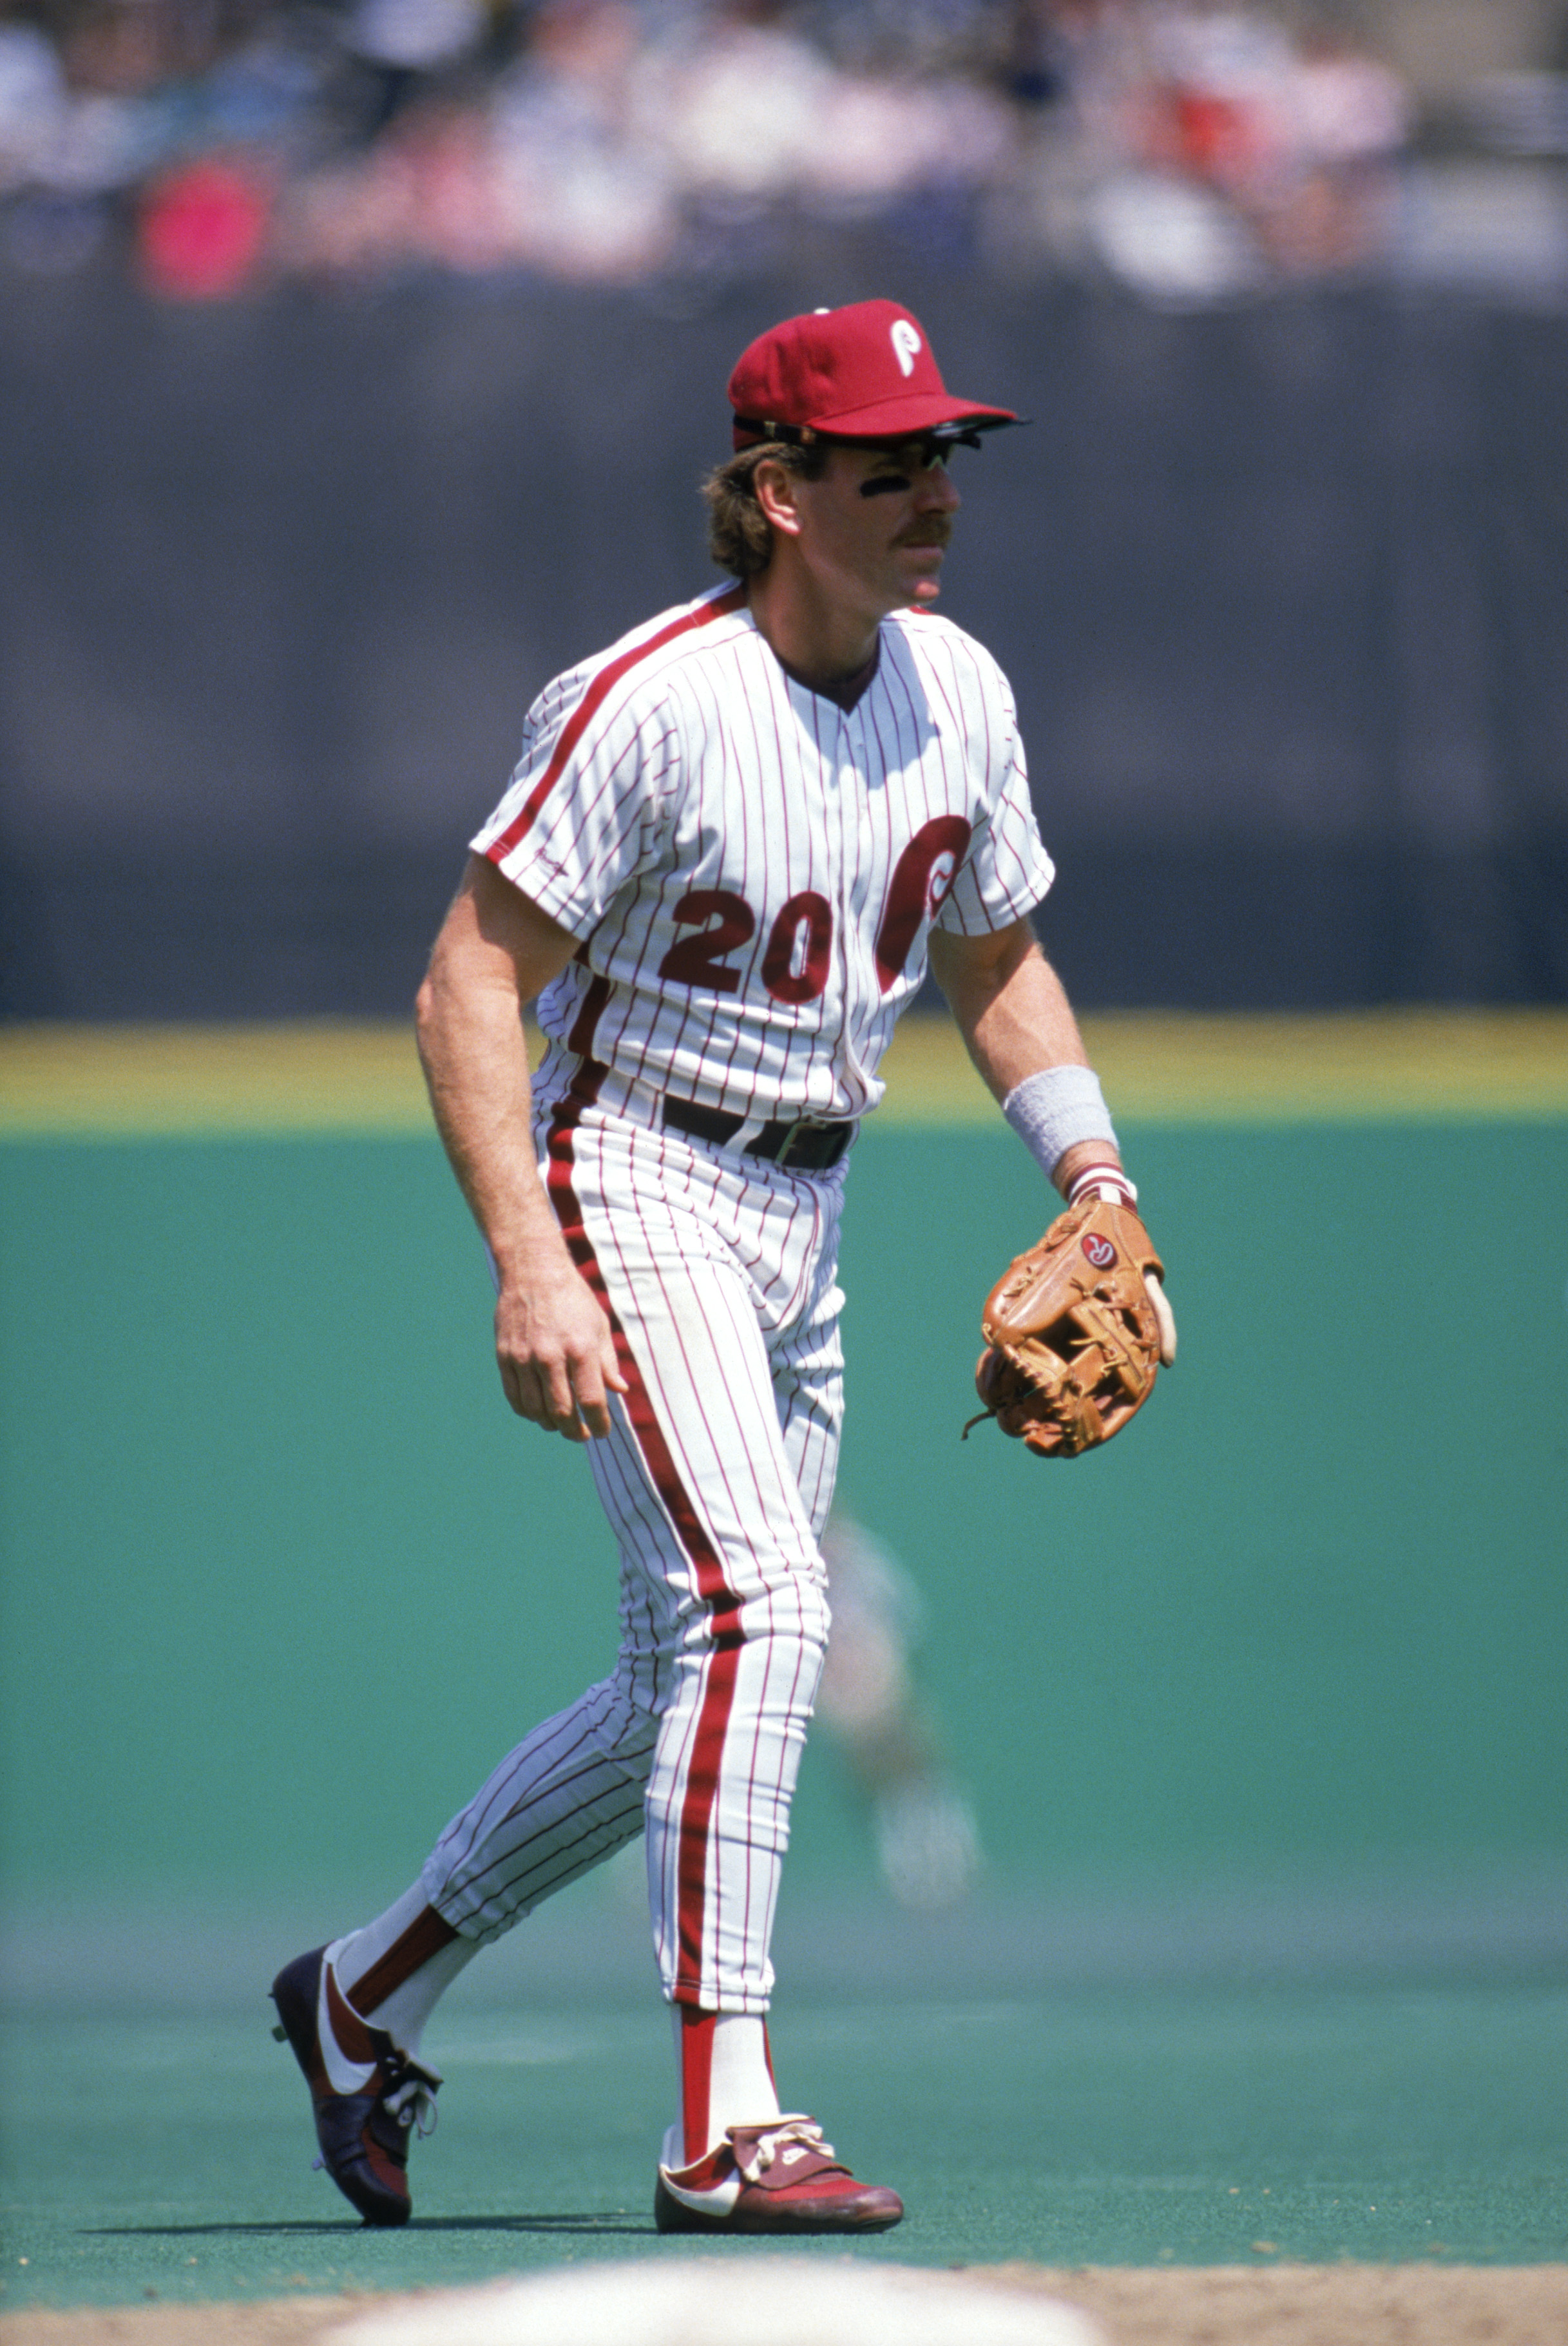 PHILADELPHIA - 1989:  Mike Schmidt #20 of the Philadelphia Phillies during a 1989 season game at Veterans Stadium in Philadelphia, Pennsylvania. (Photo by Rick Stewart/Getty Images)